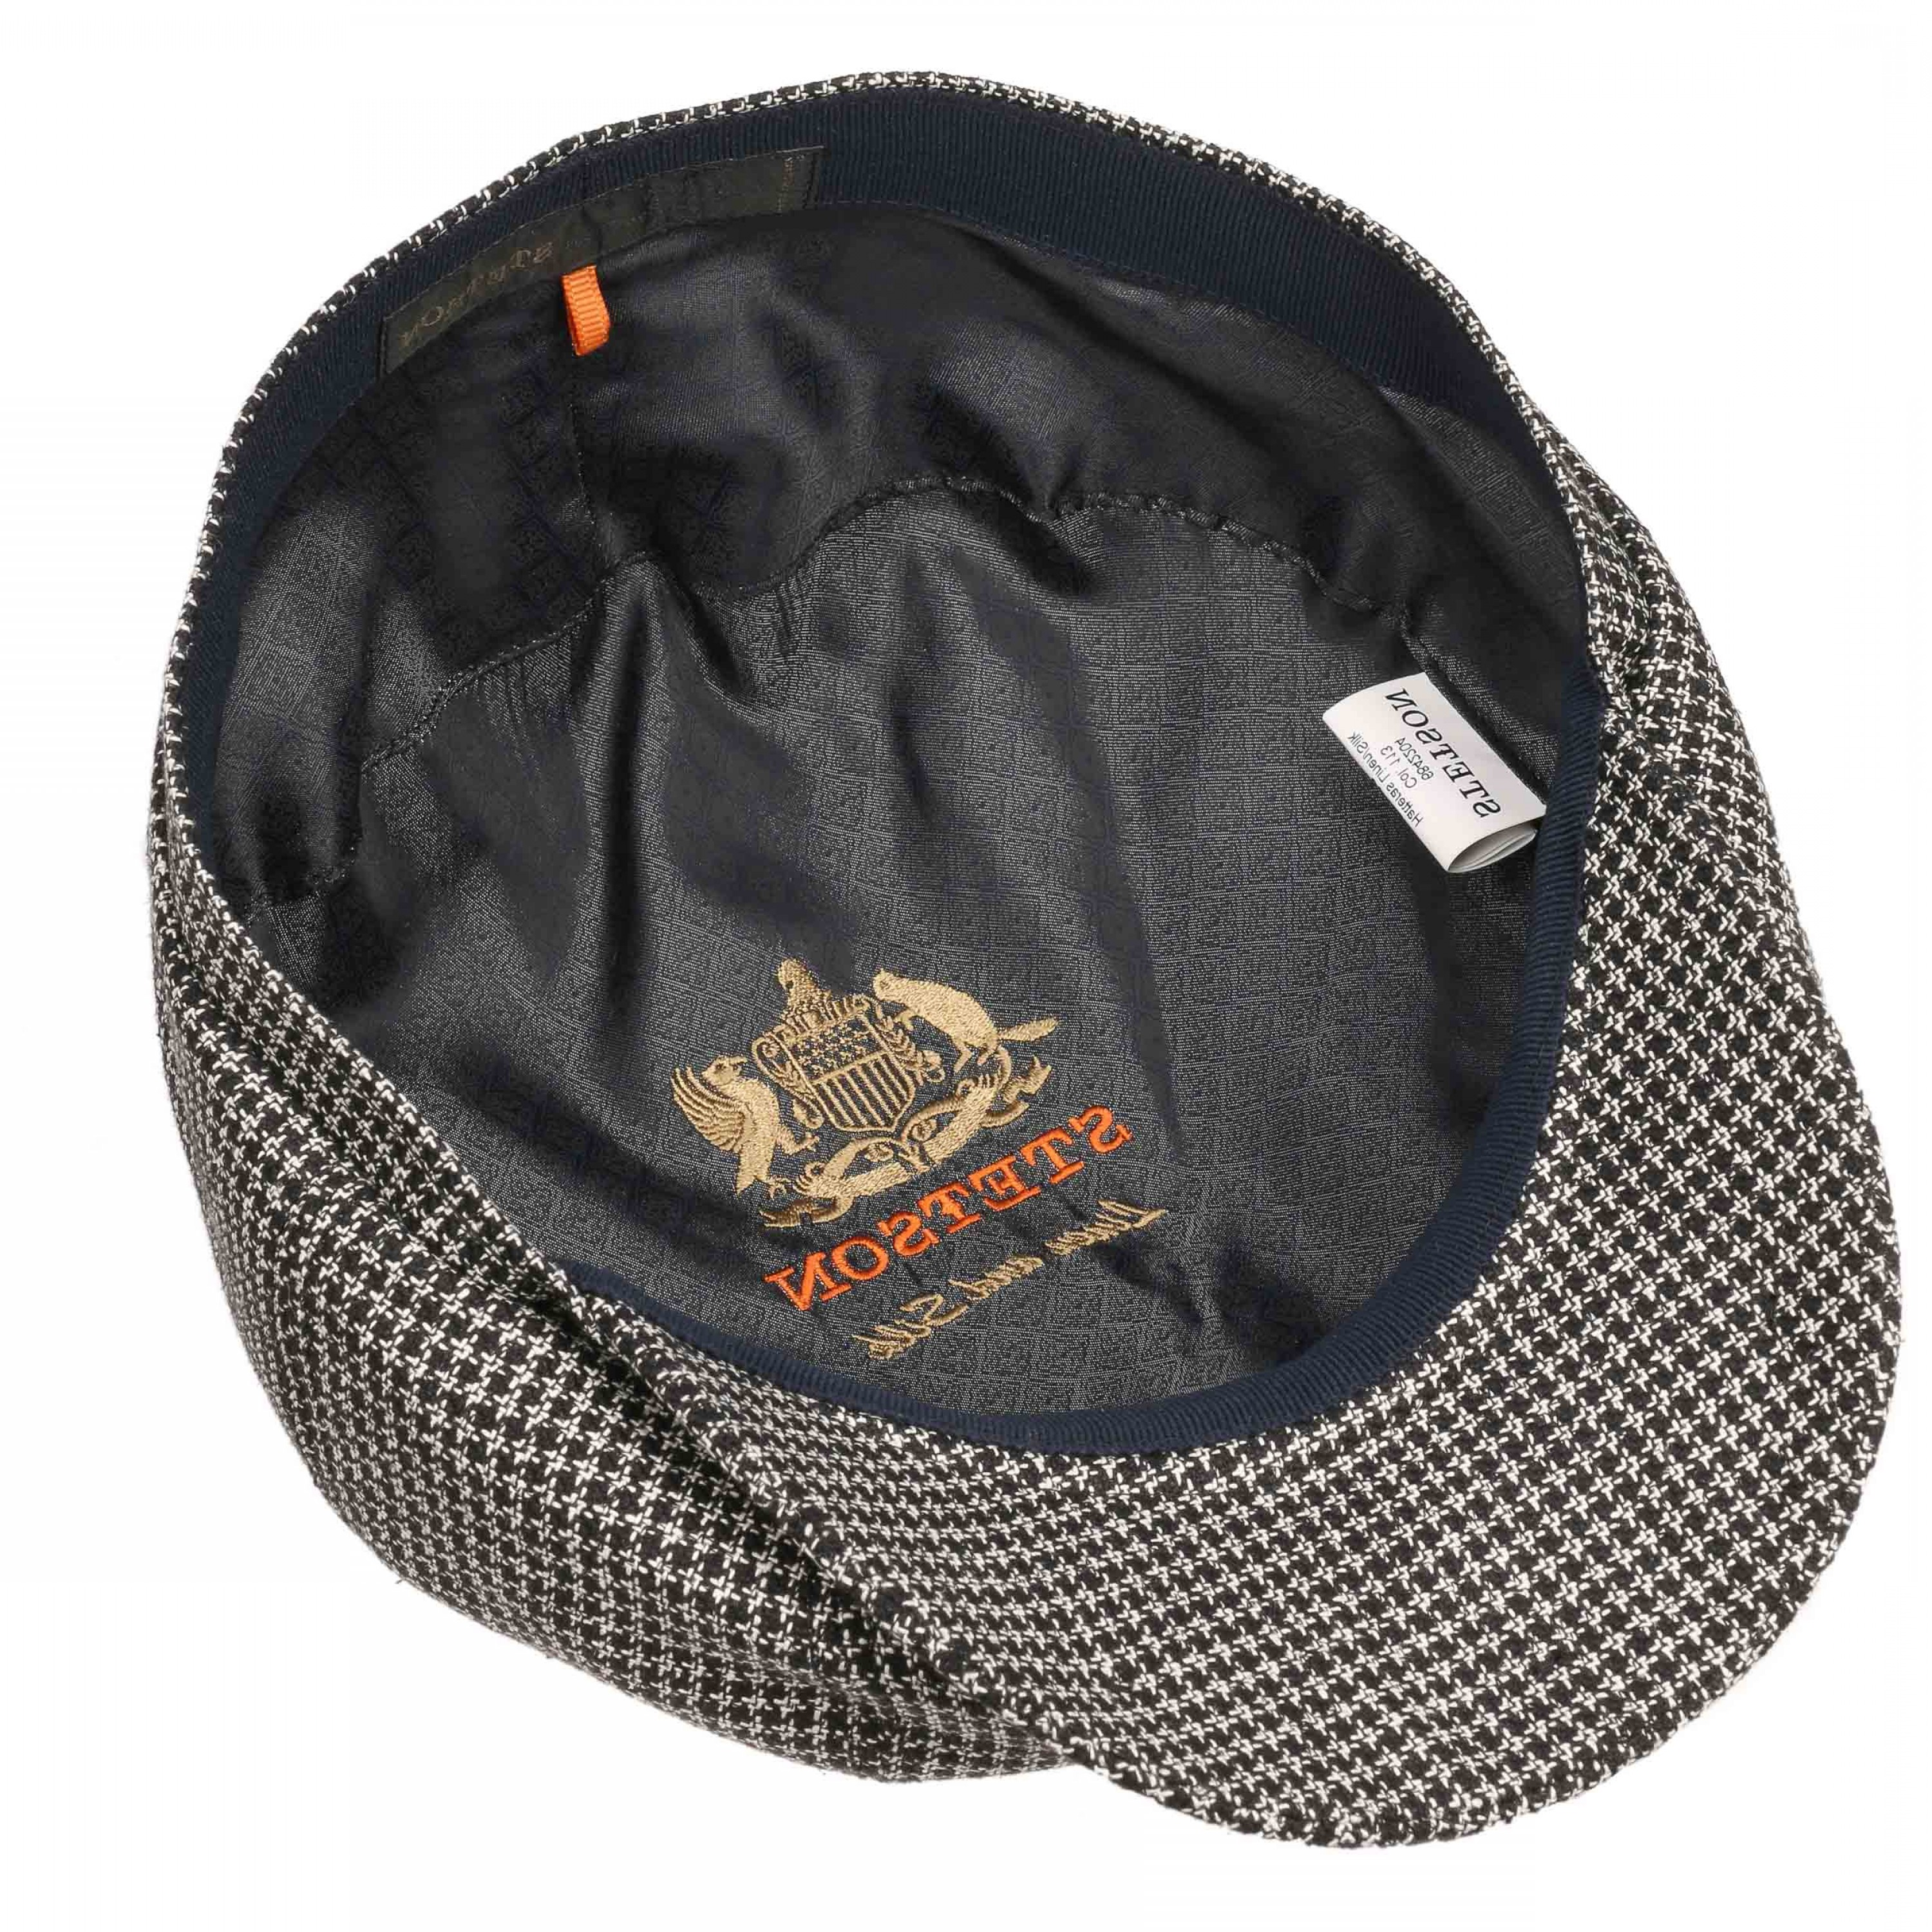 Houndstooth Hats Vector: Hatteras Houndstooth Flat Cap By Stetson English